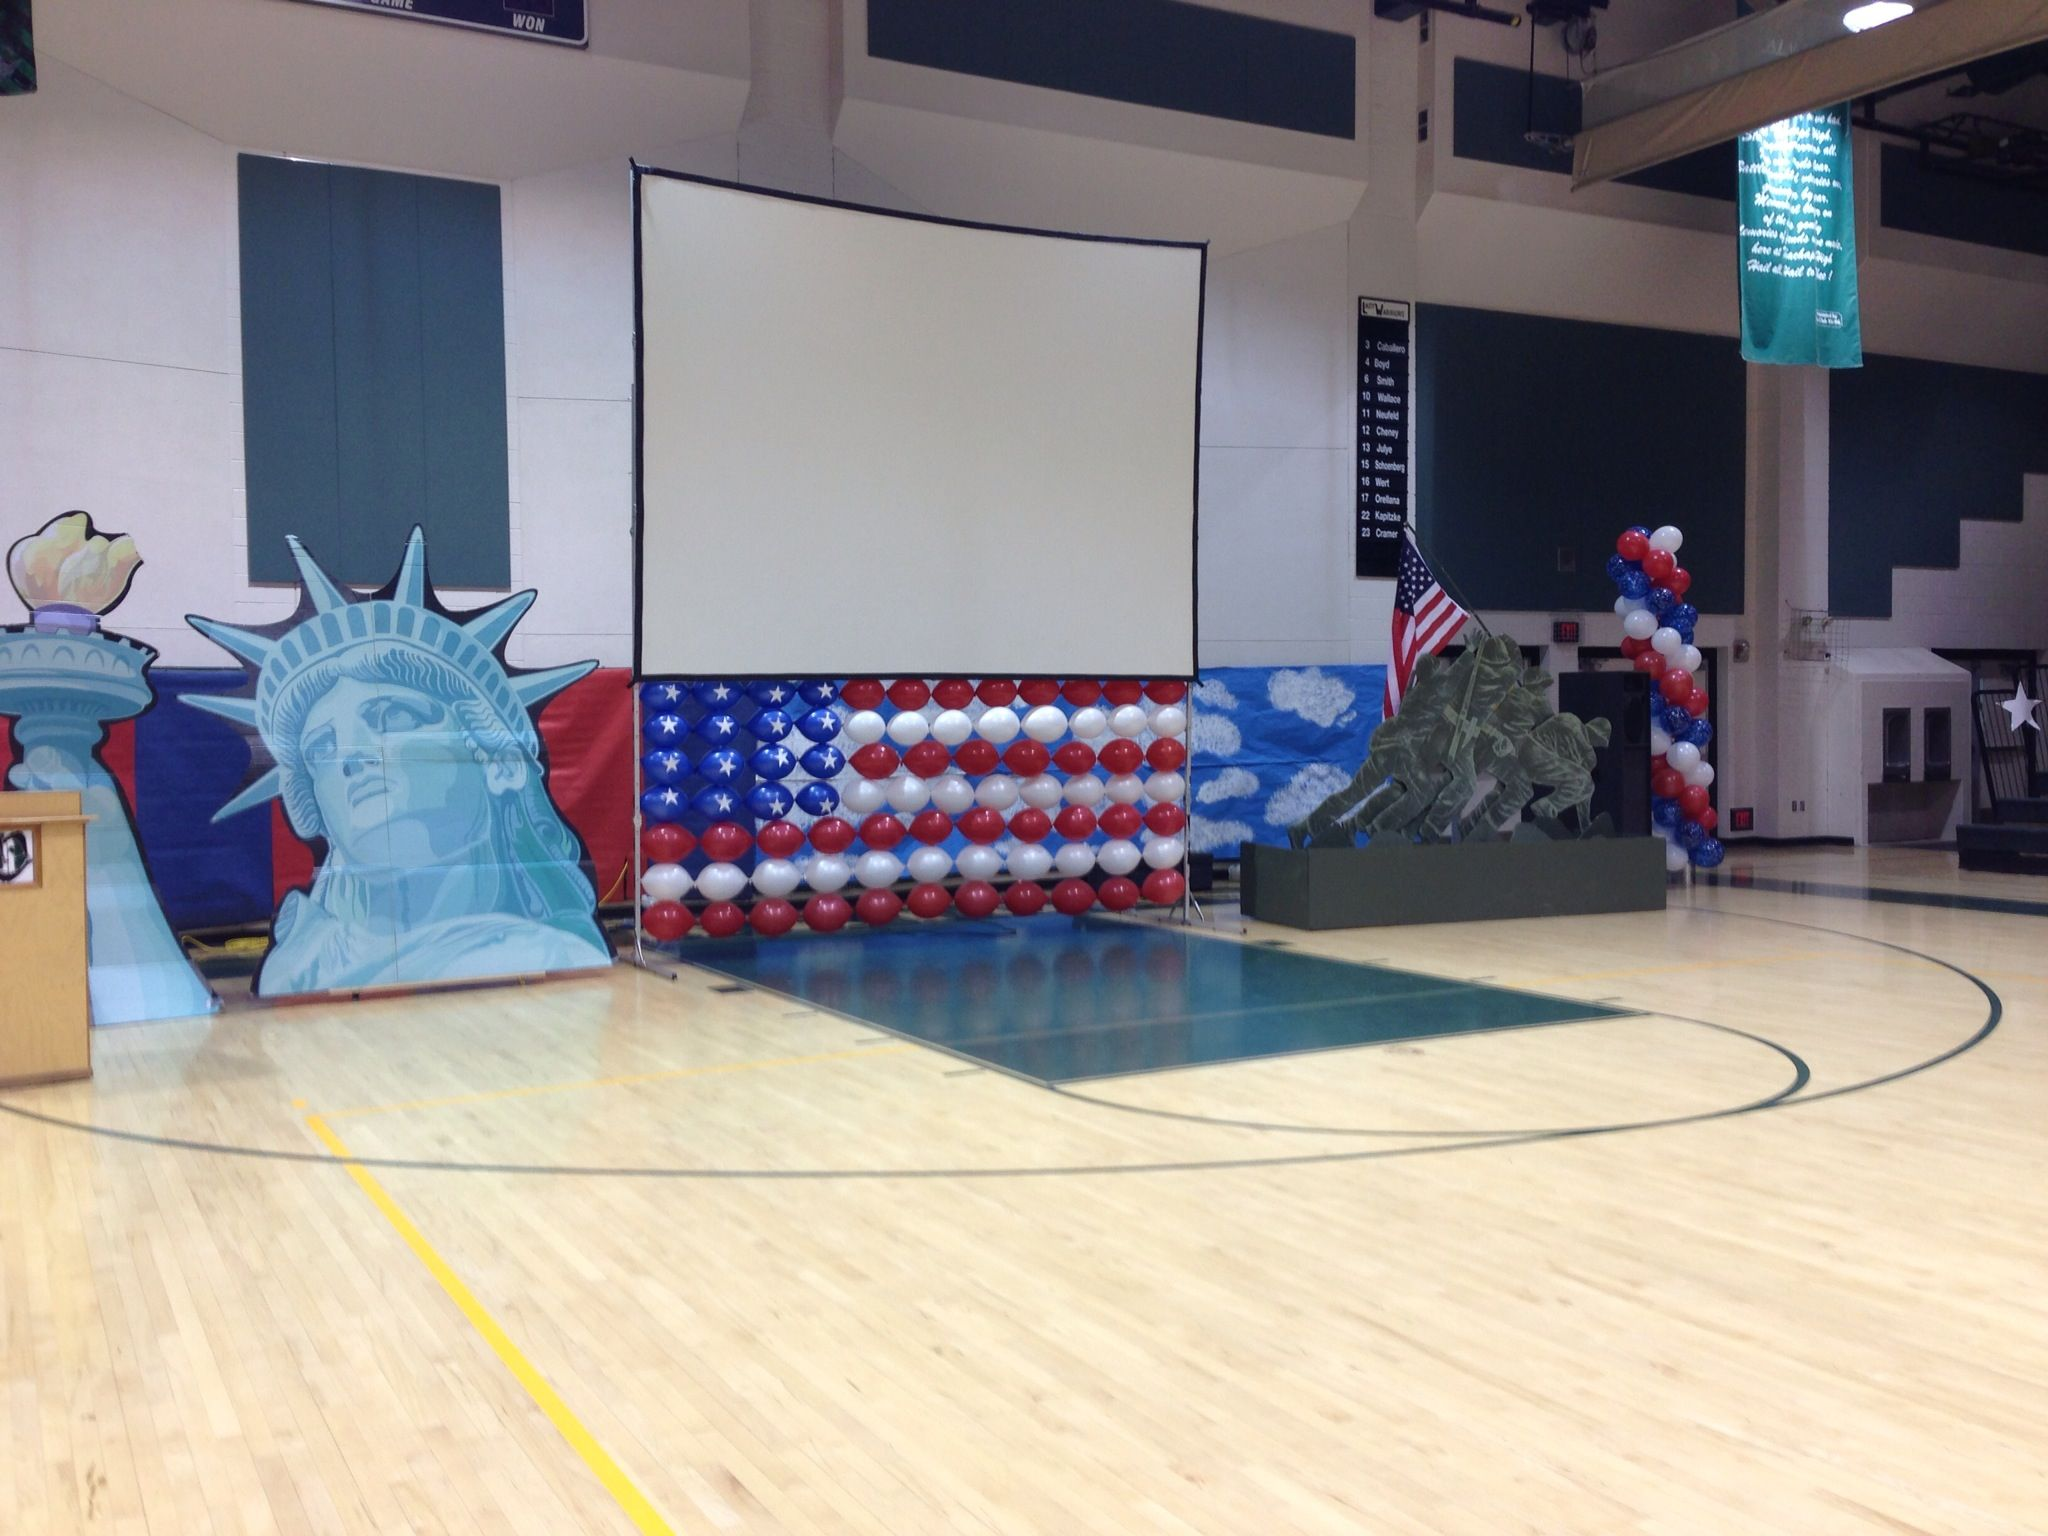 Veteran S Day Assembly Decorations Veterans Day Celebration Veterans Day Veterans Programs